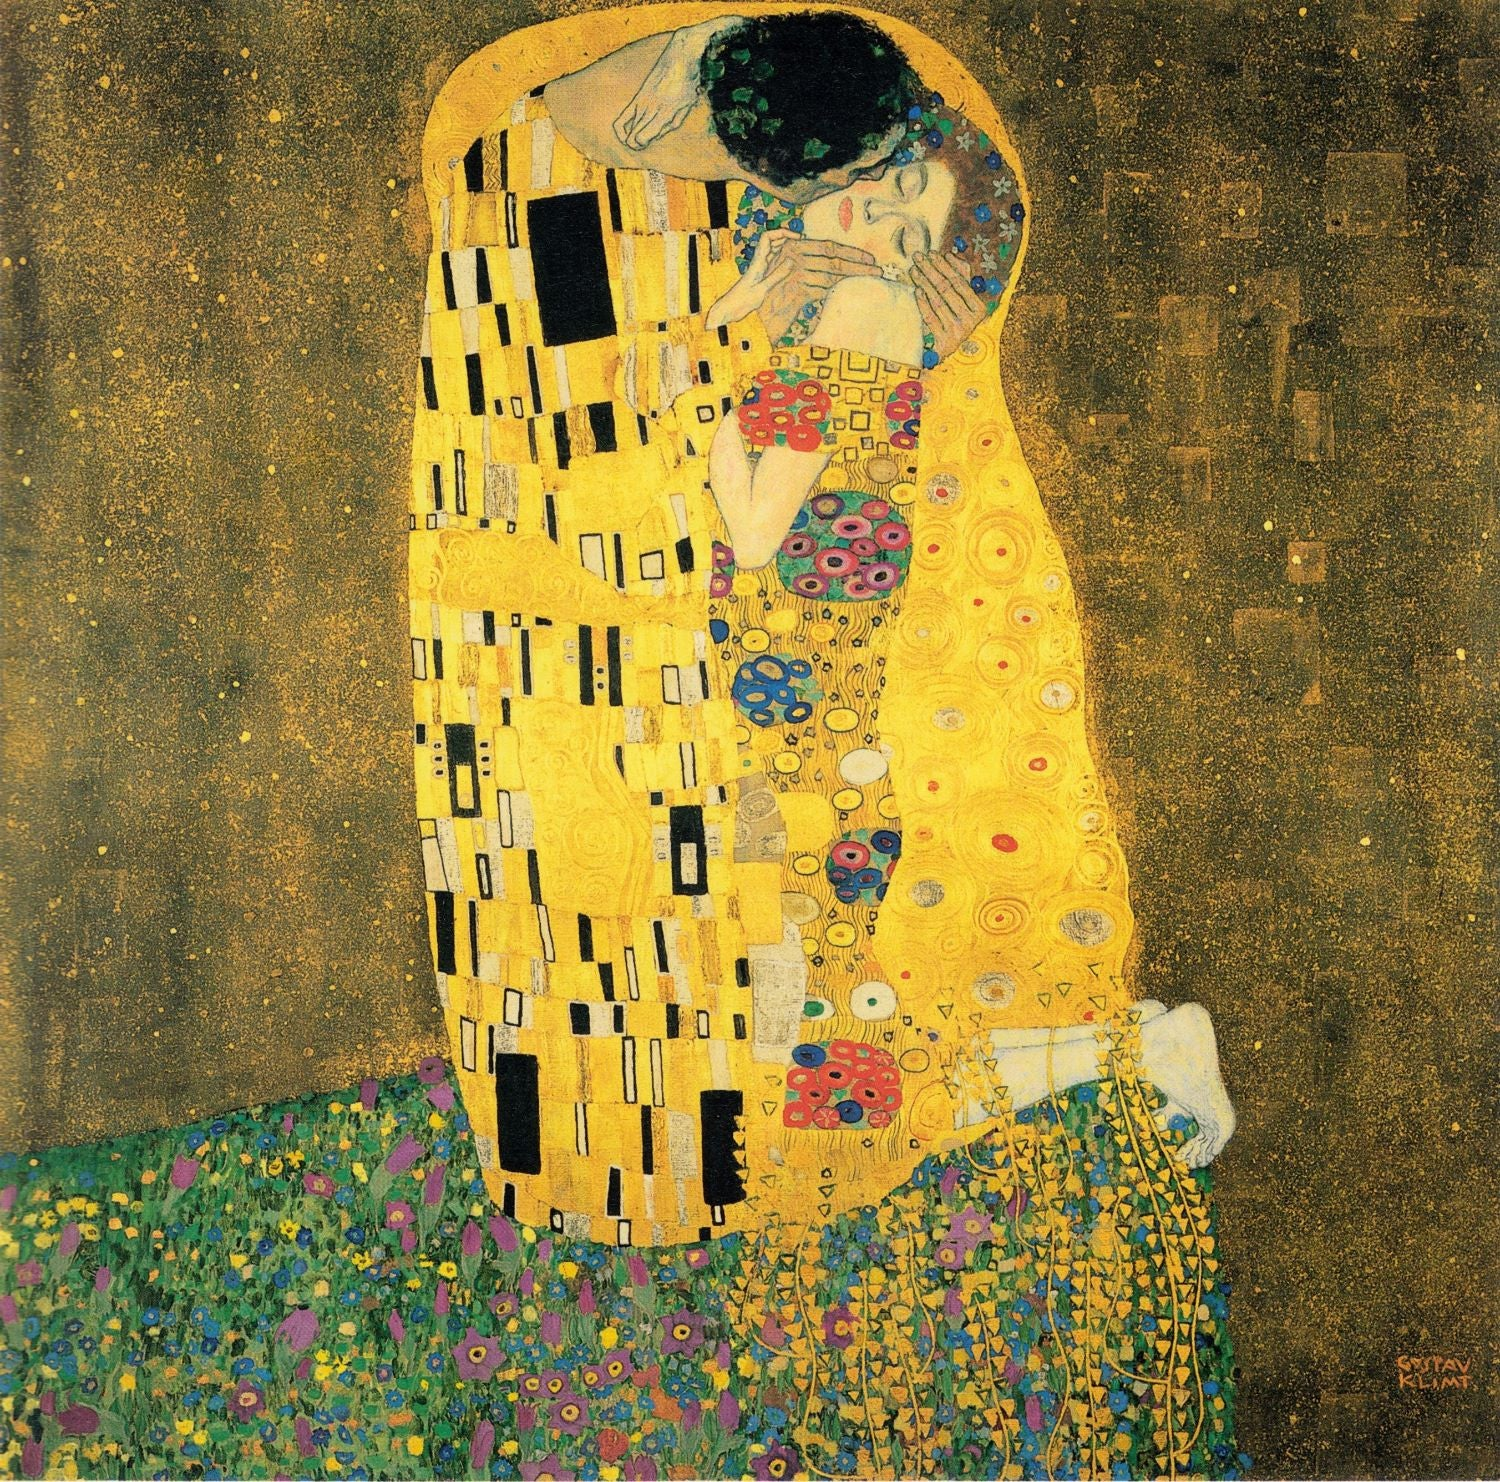 Gustav Klimt Paintings | Buy Posters, Frames, Canvas, Digital Art & Large Size Prints Of The Famous Modern Master's Artworks